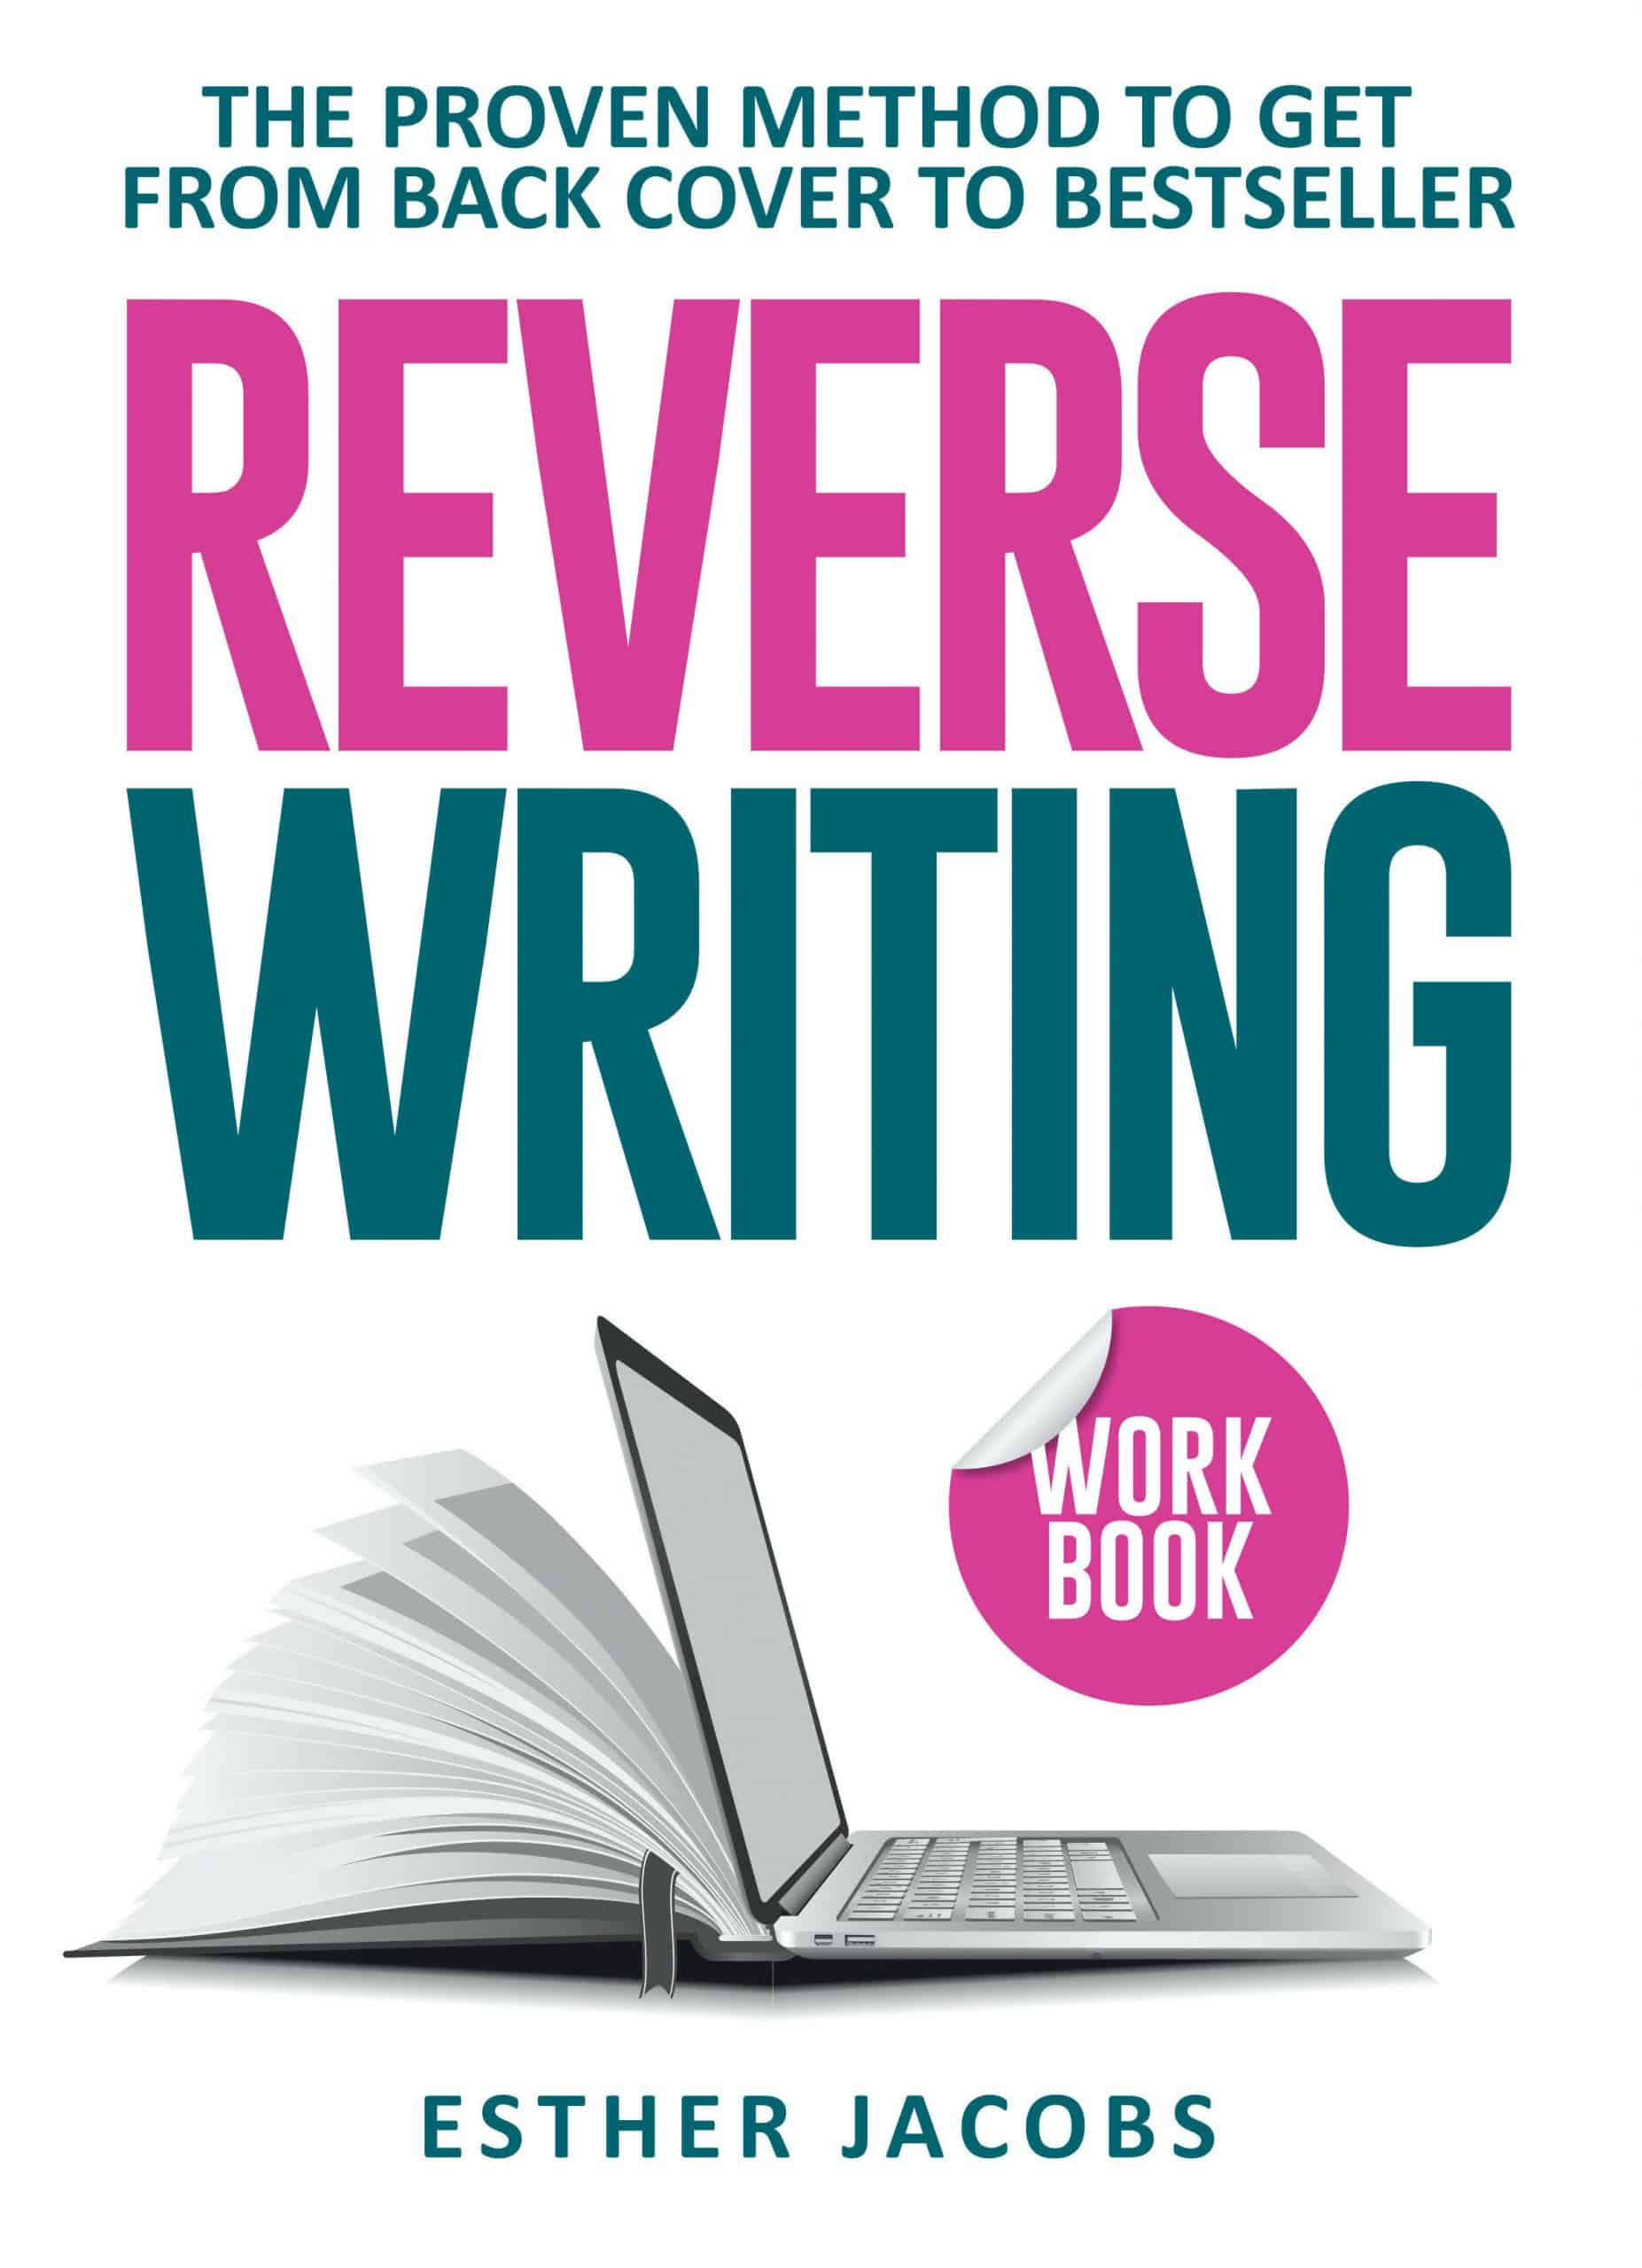 Reverse Writing - Esther Jacobs